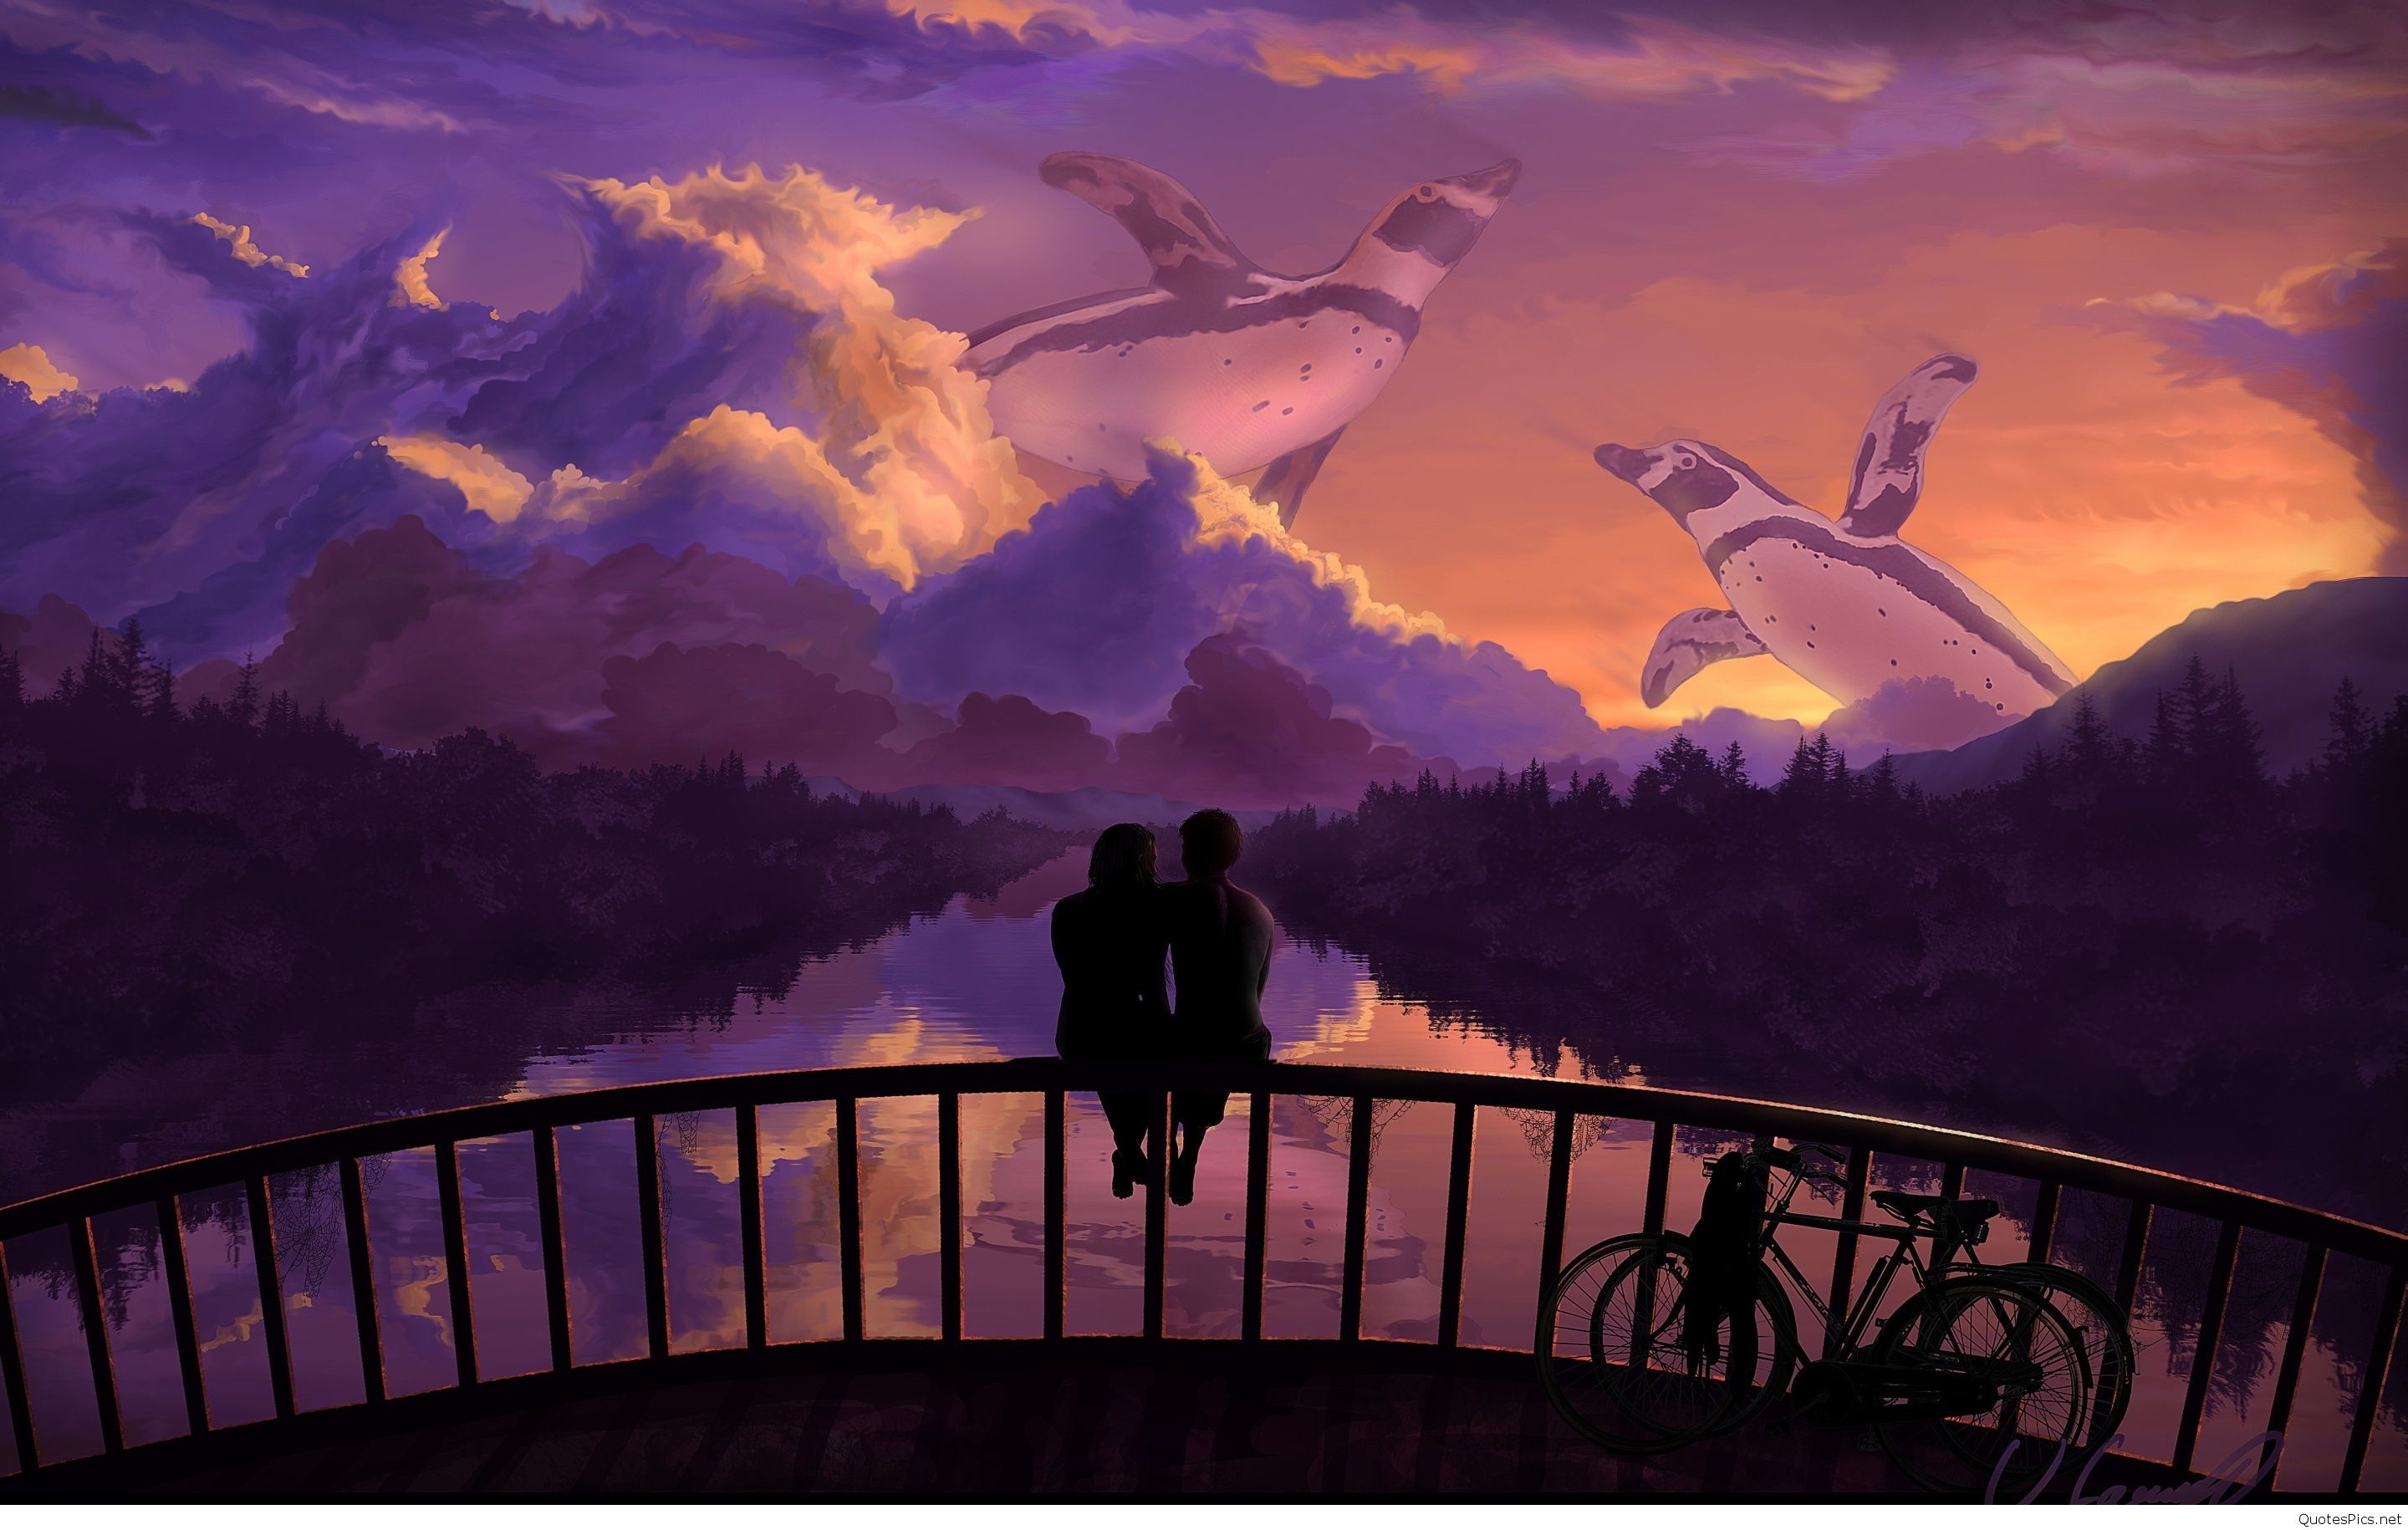 2880x1830 romantic-couple-photos-wallpaper-hd-d0i2xd